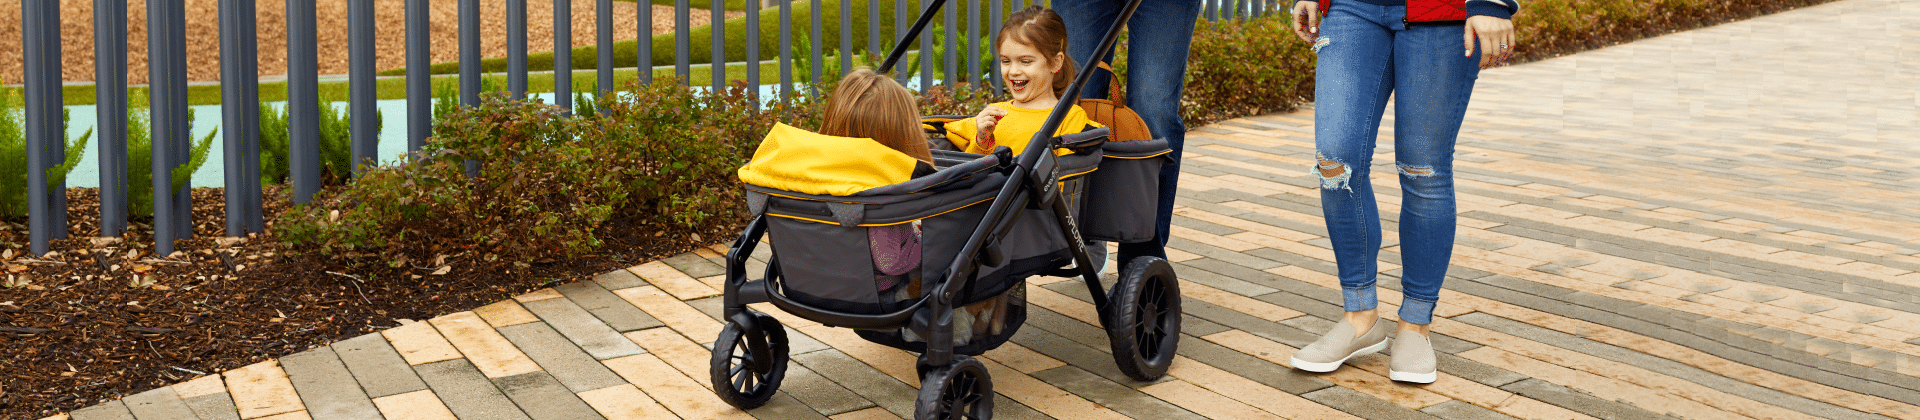 Best Stroller Wagons